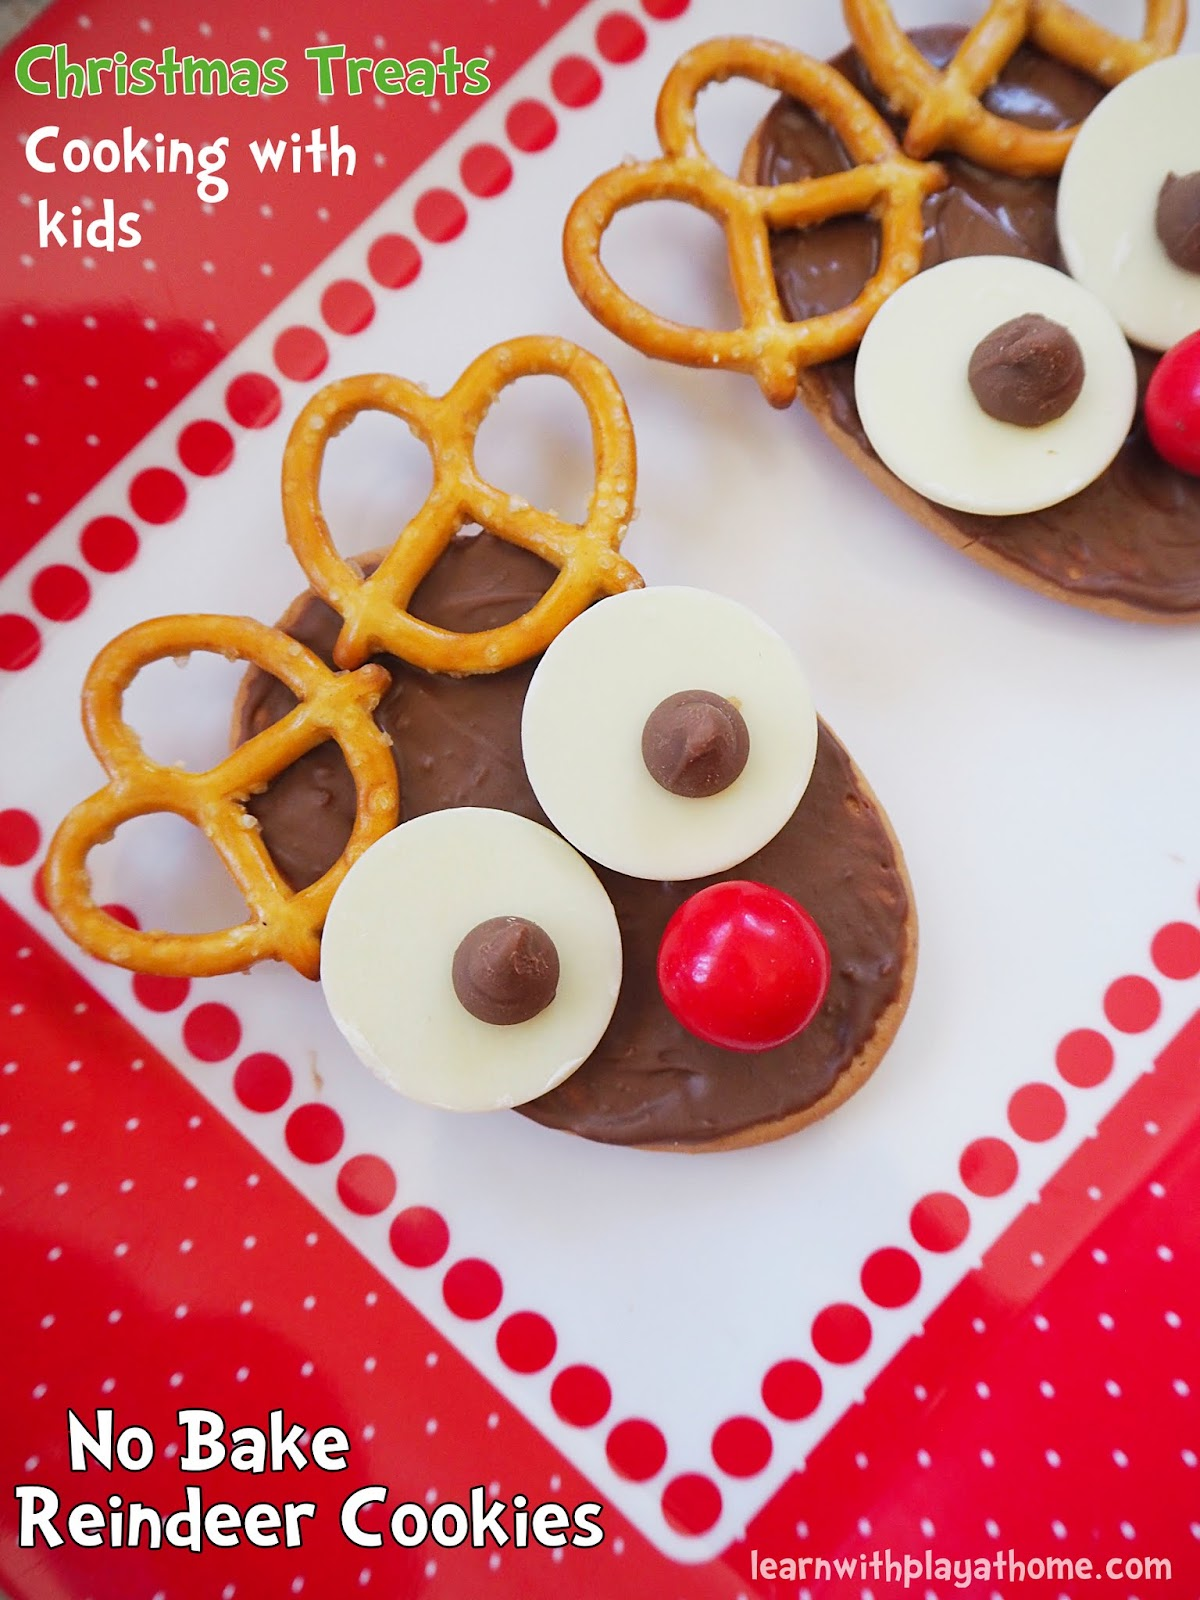 No-bake cookies are easy to make and a great way to cook with kids. Find recipes for peanut butter balls, chocolate oatmeal cookies, and more! No-Bake Cookie Recipes No-bake cookies are easy to make and a great way to cook with kids. Find recipes for peanut butter balls, chocolate oatmeal cookies, and more! This recipe is one of the.